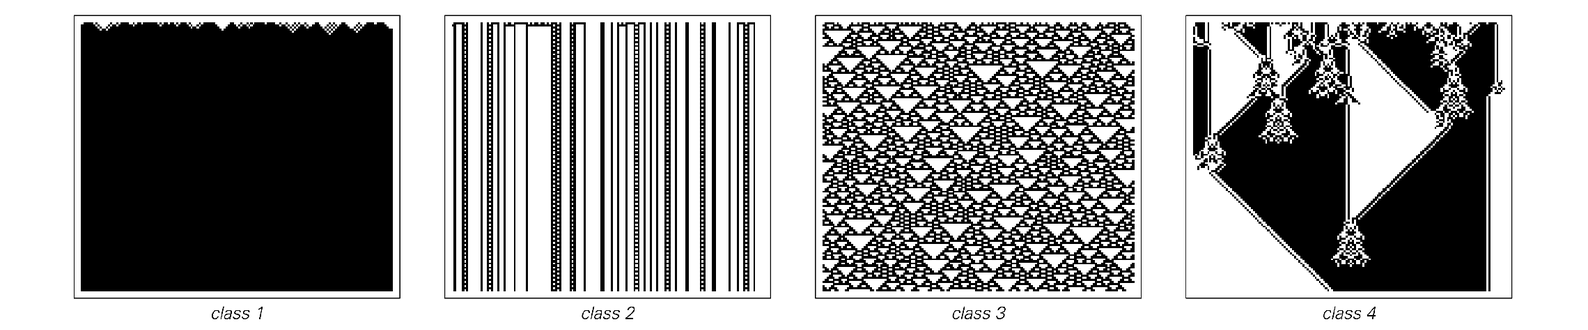 Four classes of behavior in evolution of cellular automata